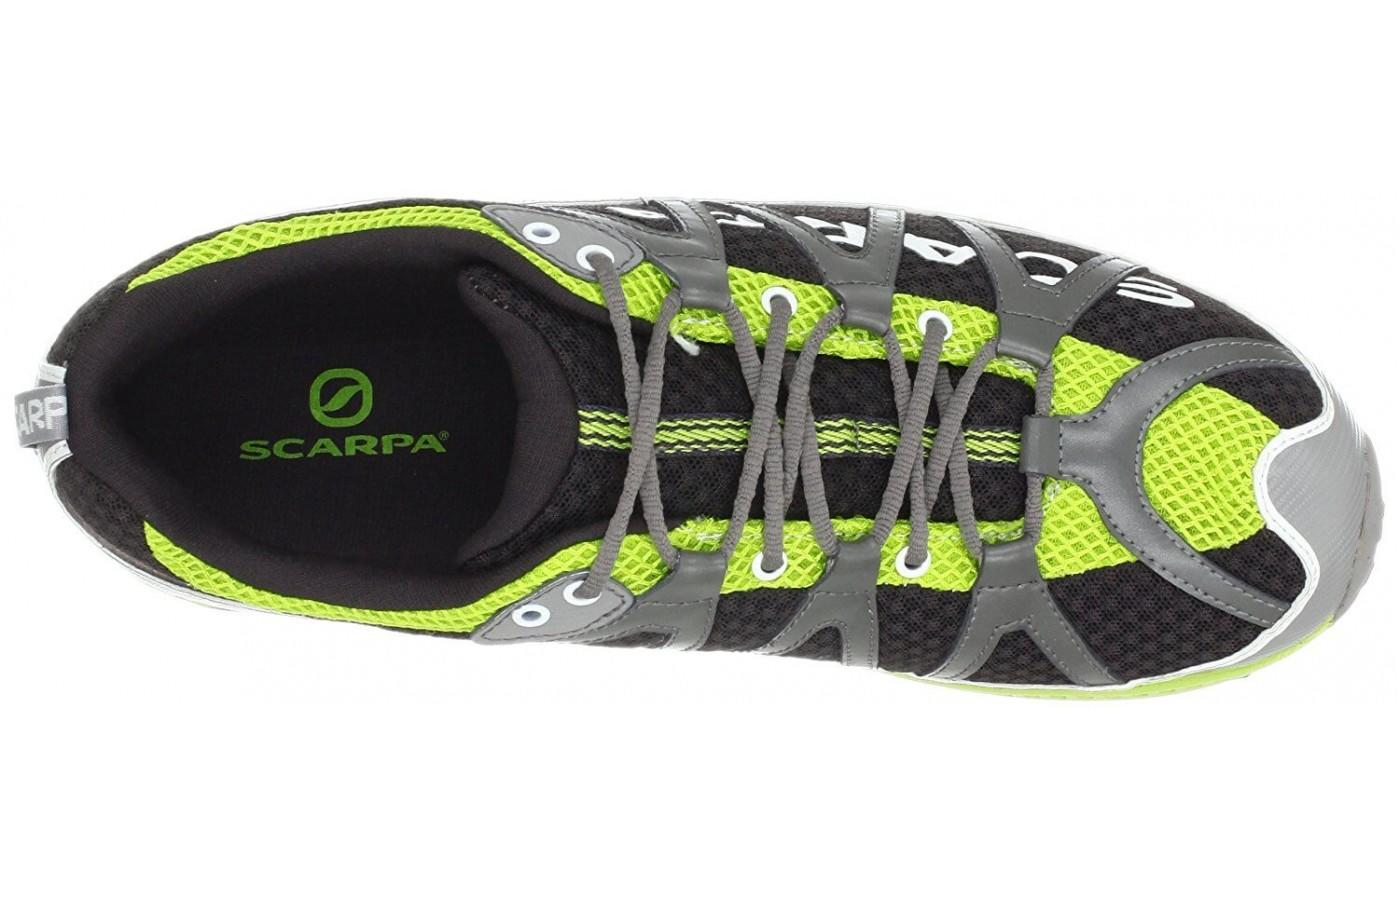 the Scarpa Spark features a unique lace-up configuration